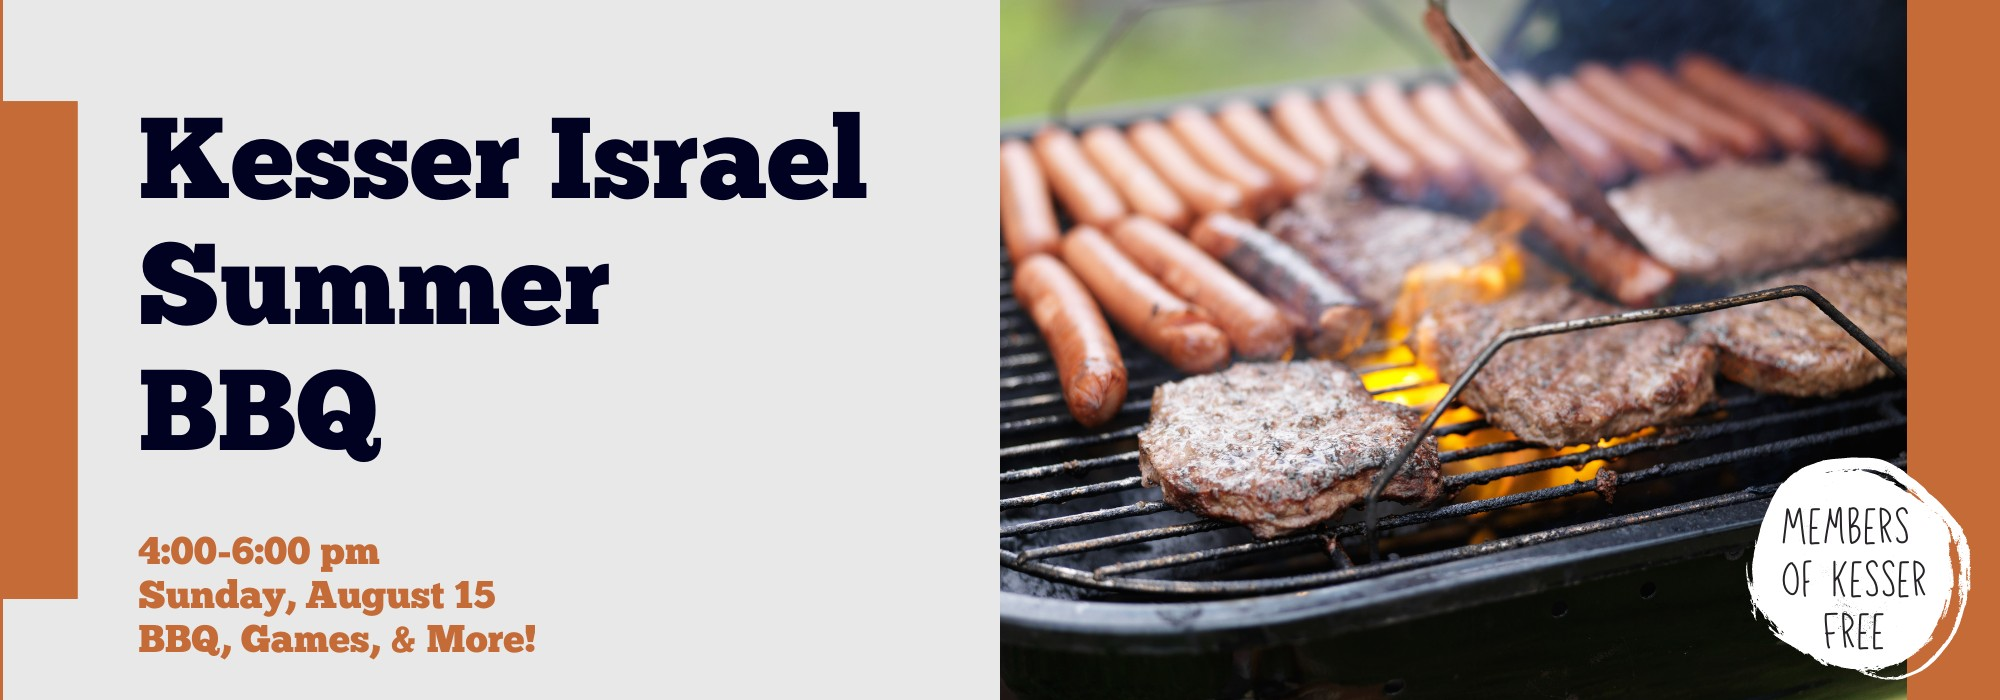 """<a href=""""https://www.kesserisrael.org/event/kesser-israel-summer-bbq.html""""                                     target="""""""">                                                                 <span class=""""slider_title"""">                                     We're fired up to bring the community together!                                </span>                                                                 </a>                                                                                                                                                                                      <a href=""""https://www.kesserisrael.org/event/kesser-israel-summer-bbq.html"""" class=""""slider_link""""                             target="""""""">                             Click to register & for more info                            </a>"""